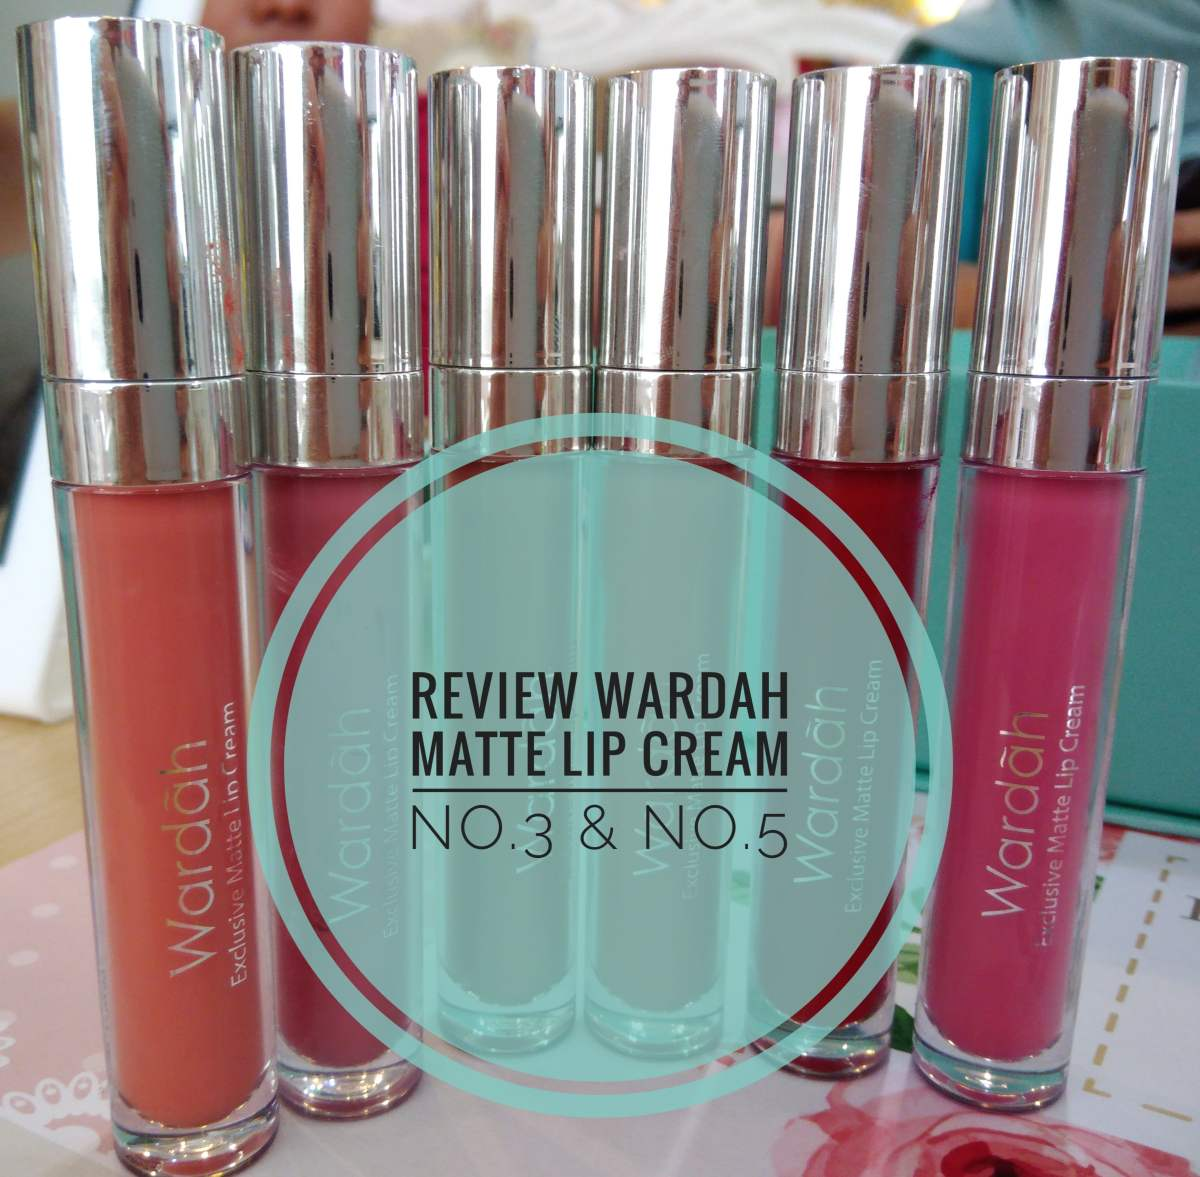 Review Wardah Exclusive Matte Lip Cream - No.5 & No.3